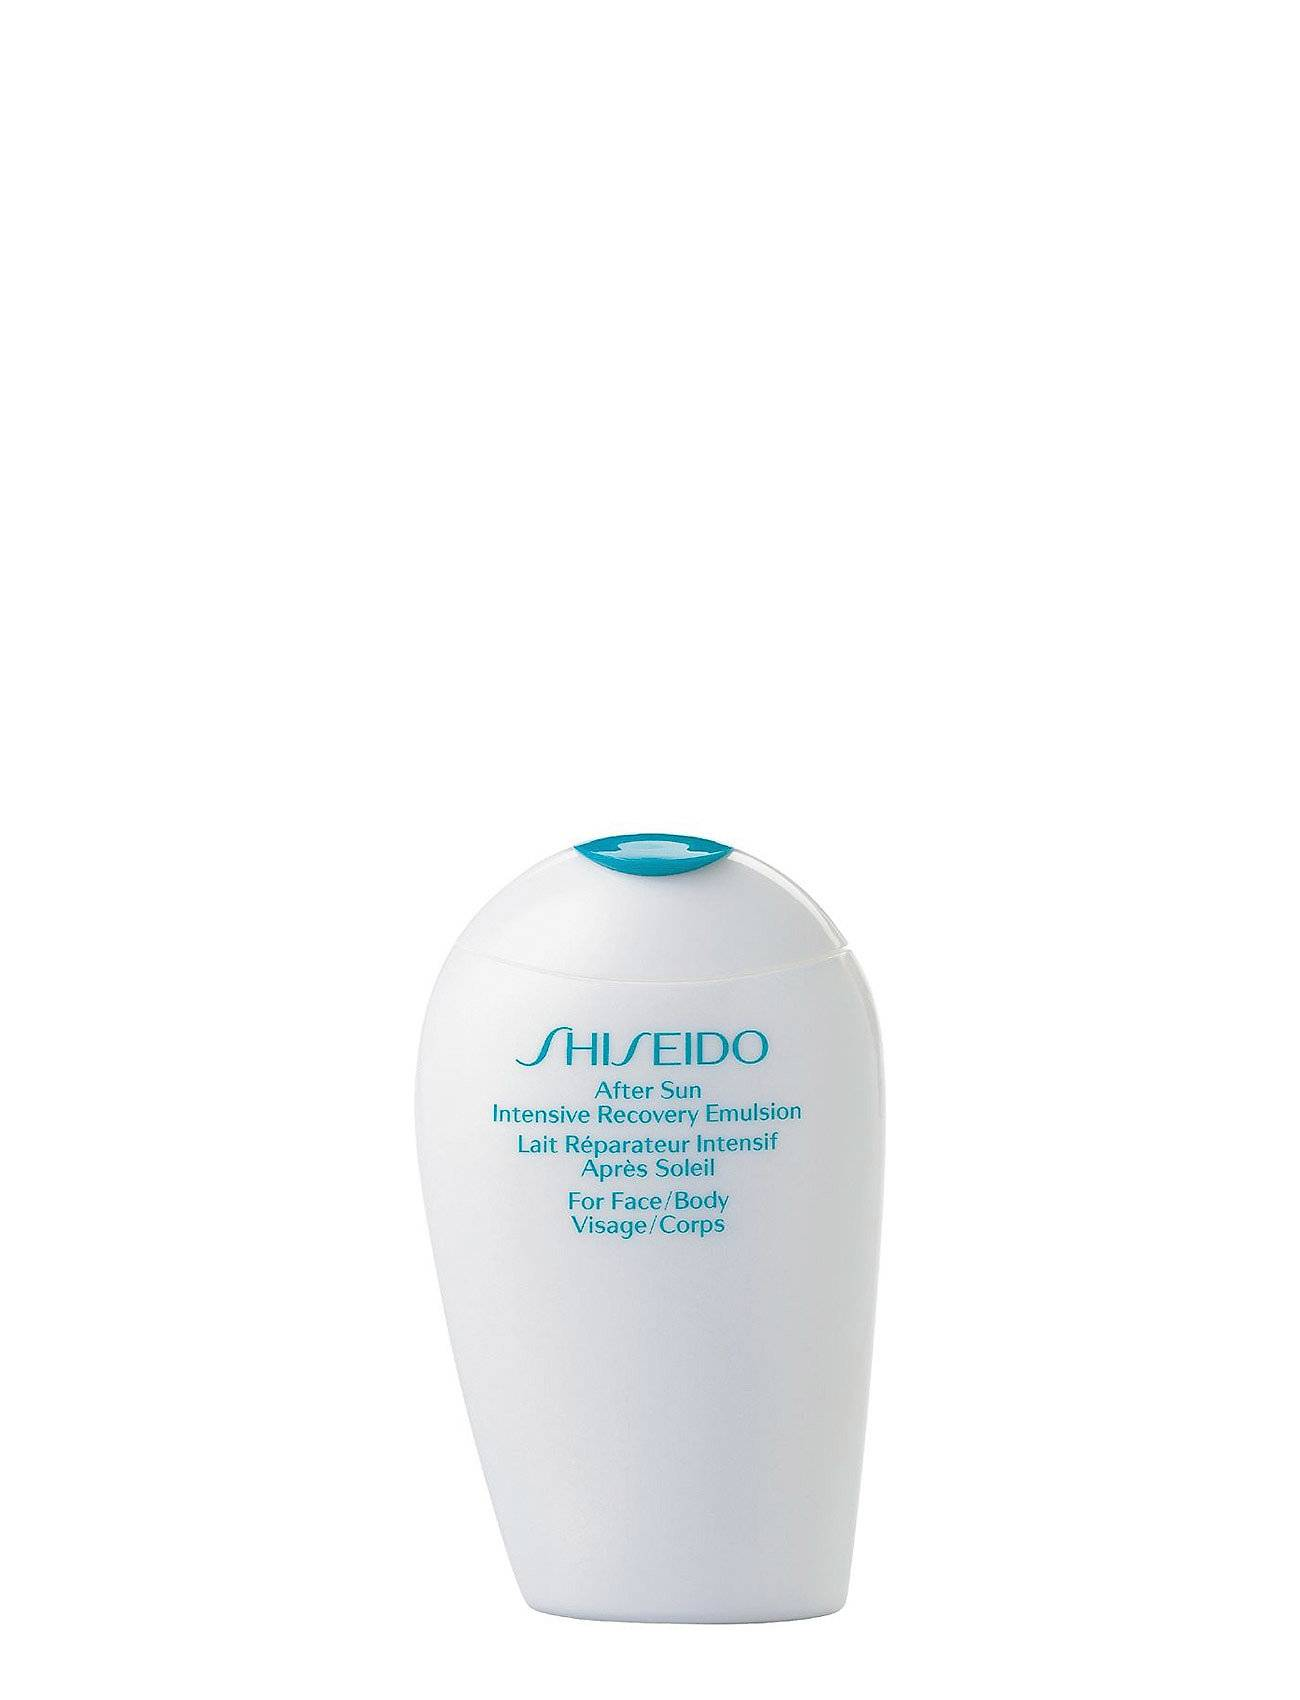 Shiseido After Sun Intensive Recovery Emulsion Beauty MEN Skin Care Sun Products After Sun Care Nude Shiseido